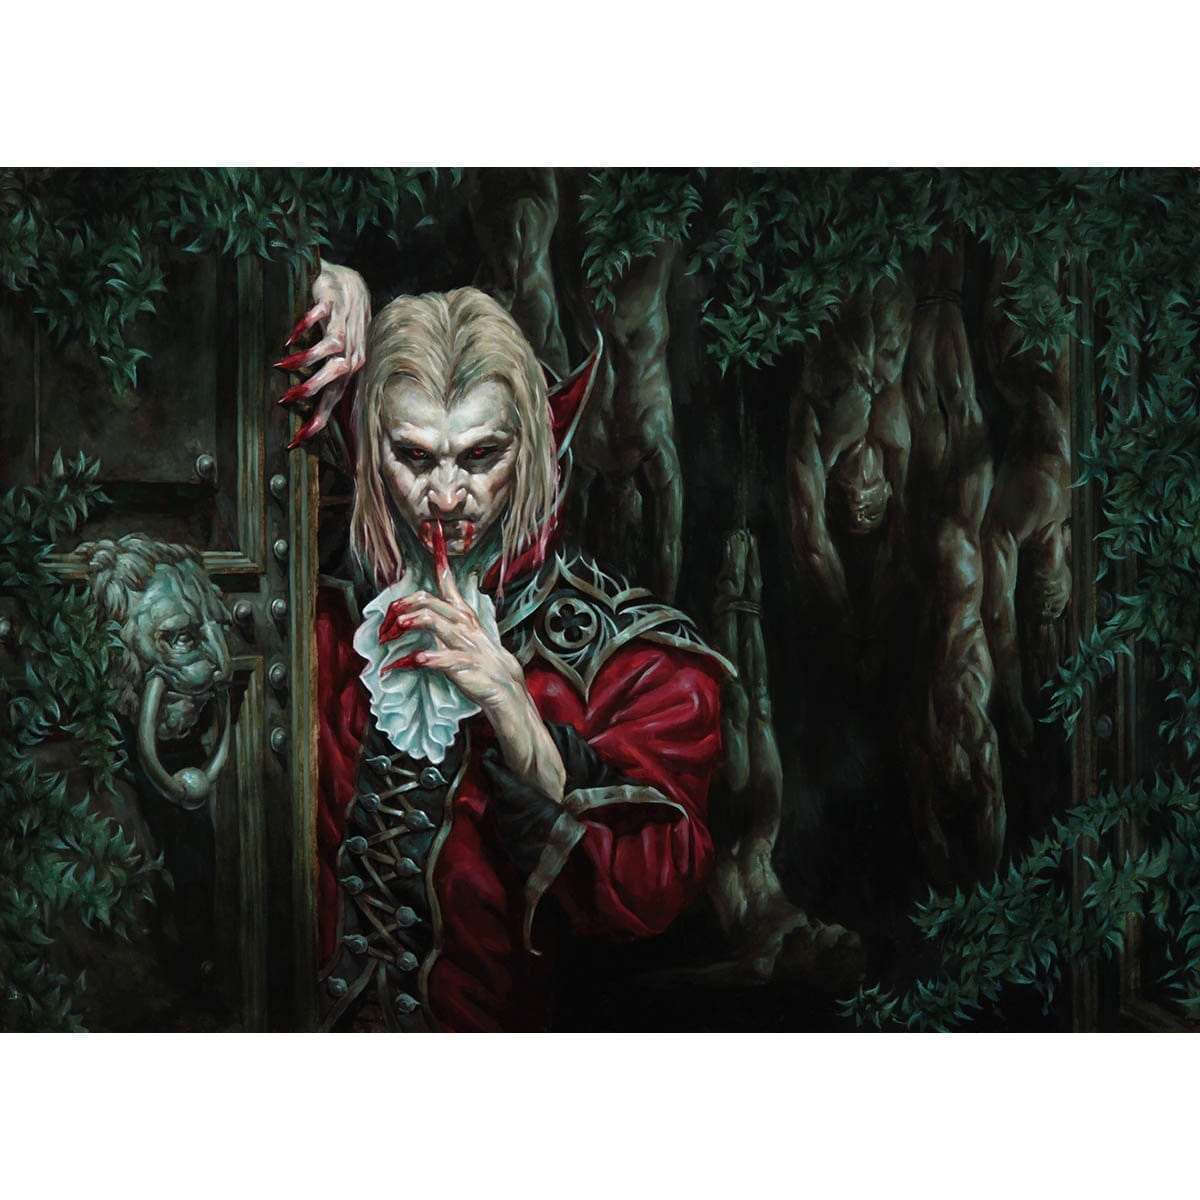 Nearheath Stalker Print - Print - Original Magic Art - Accessories for Magic the Gathering and other card games